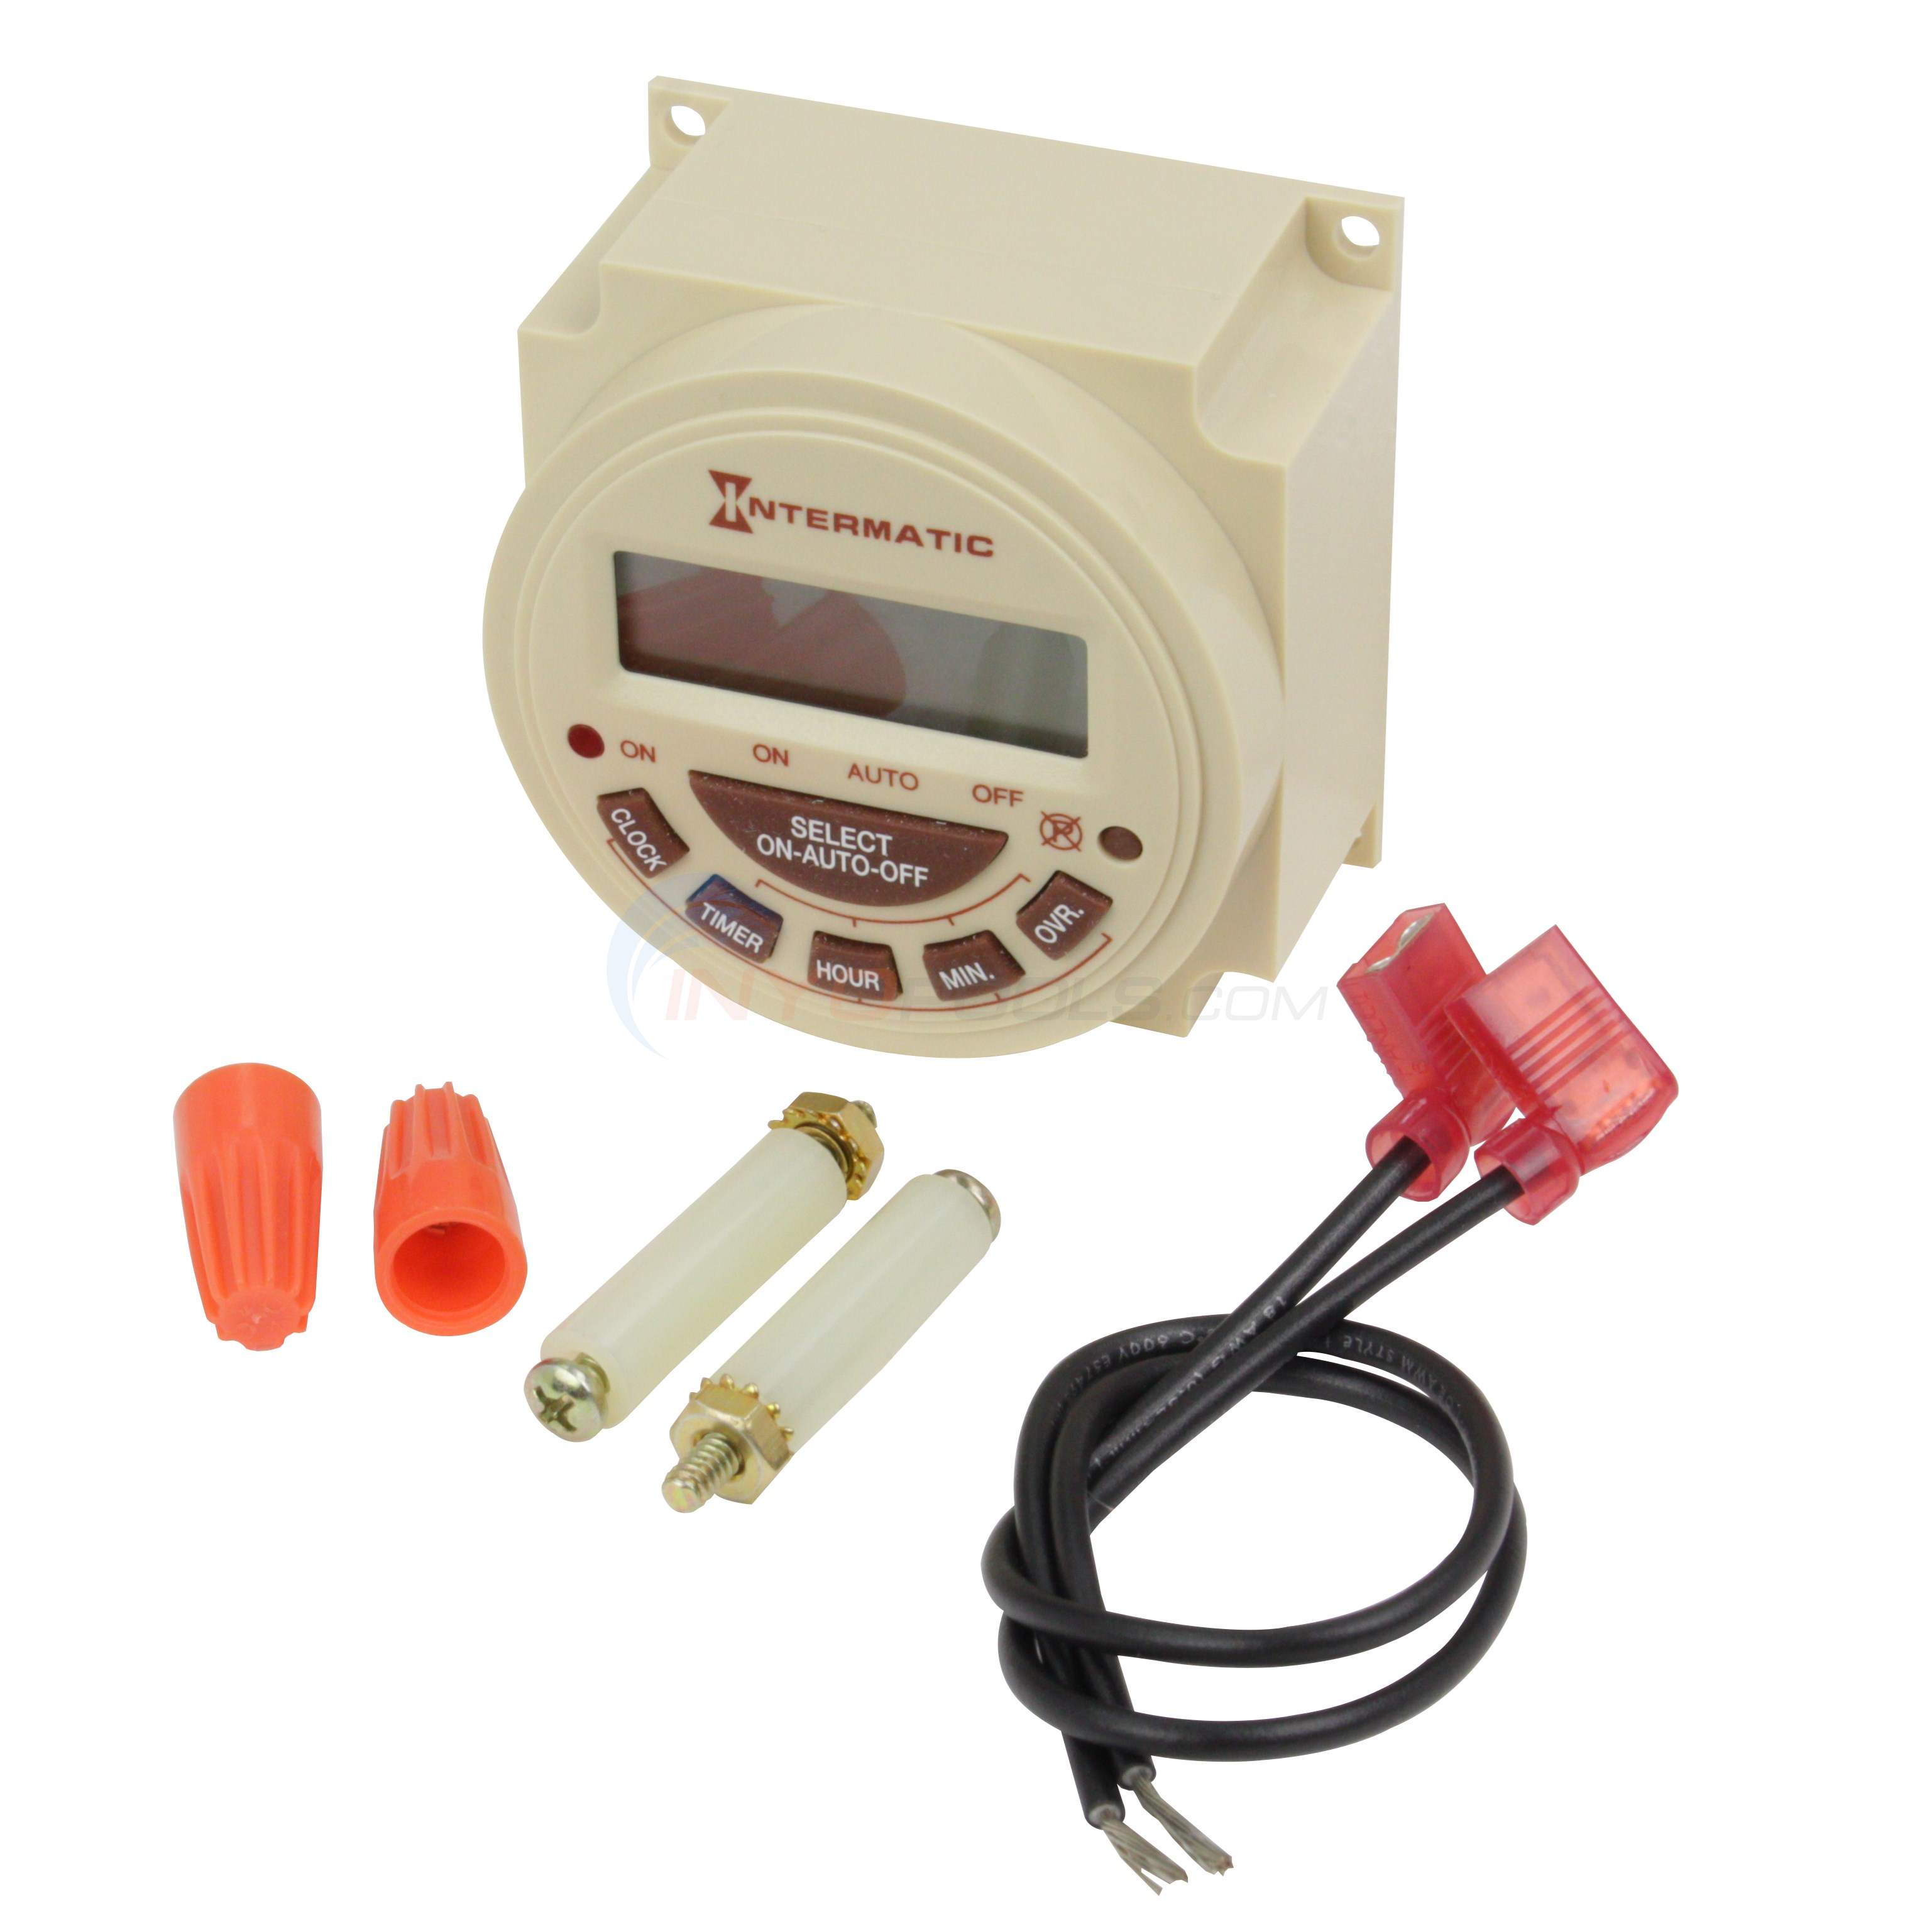 Intermatic Digital Timer Replacement Kit w/ Wire Leads